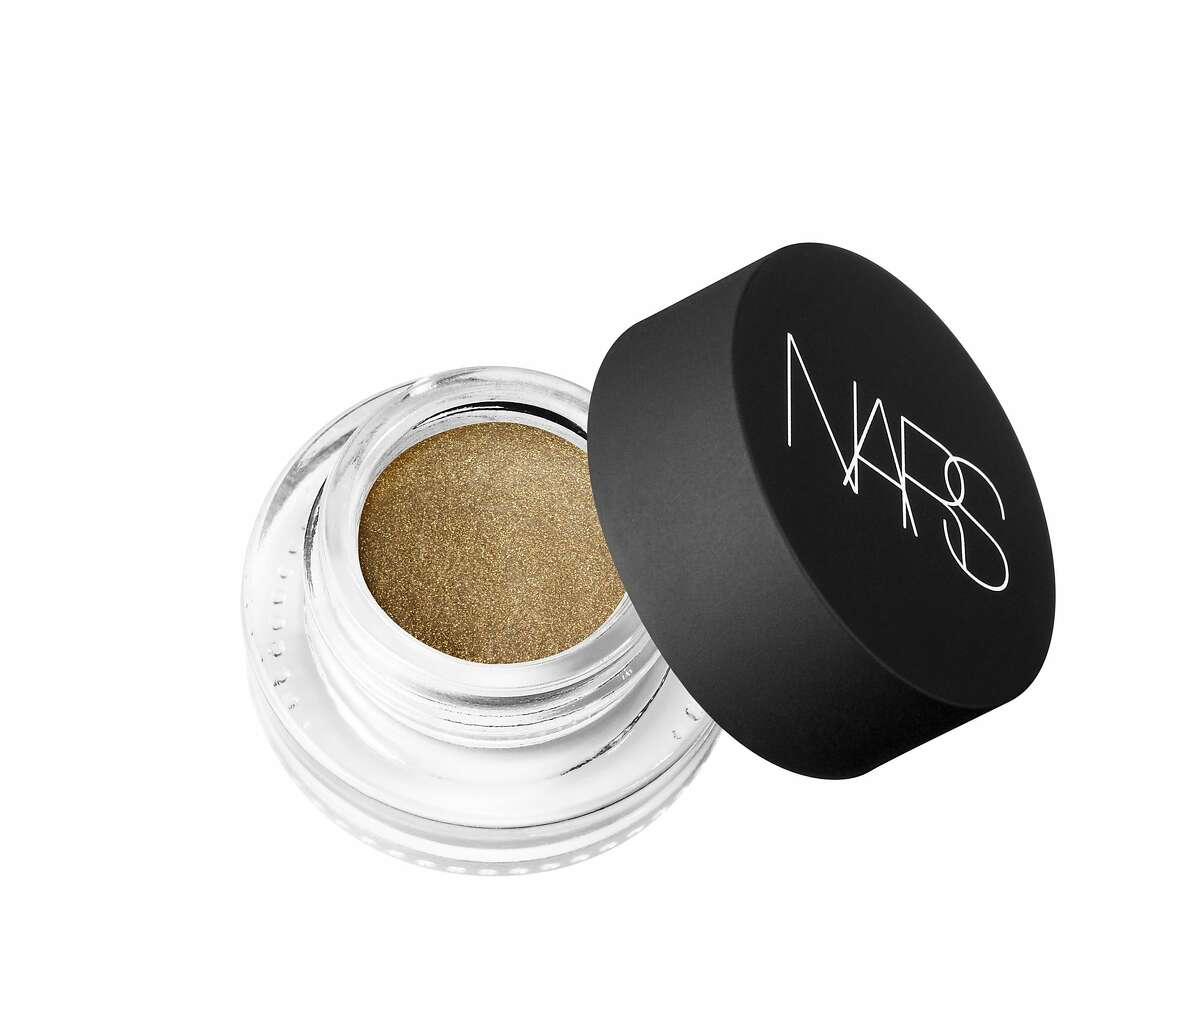 At Creatures of the Wind, Aaron de Mey for NARS Cosmetics channeled punk rocker Siouxsie Sioux when he came up with the tough girl matte black cat eye, hugged by a block of saturated sparkling gold via NARS Eye Paint in Iskander (available at NARSCosmetics.com).